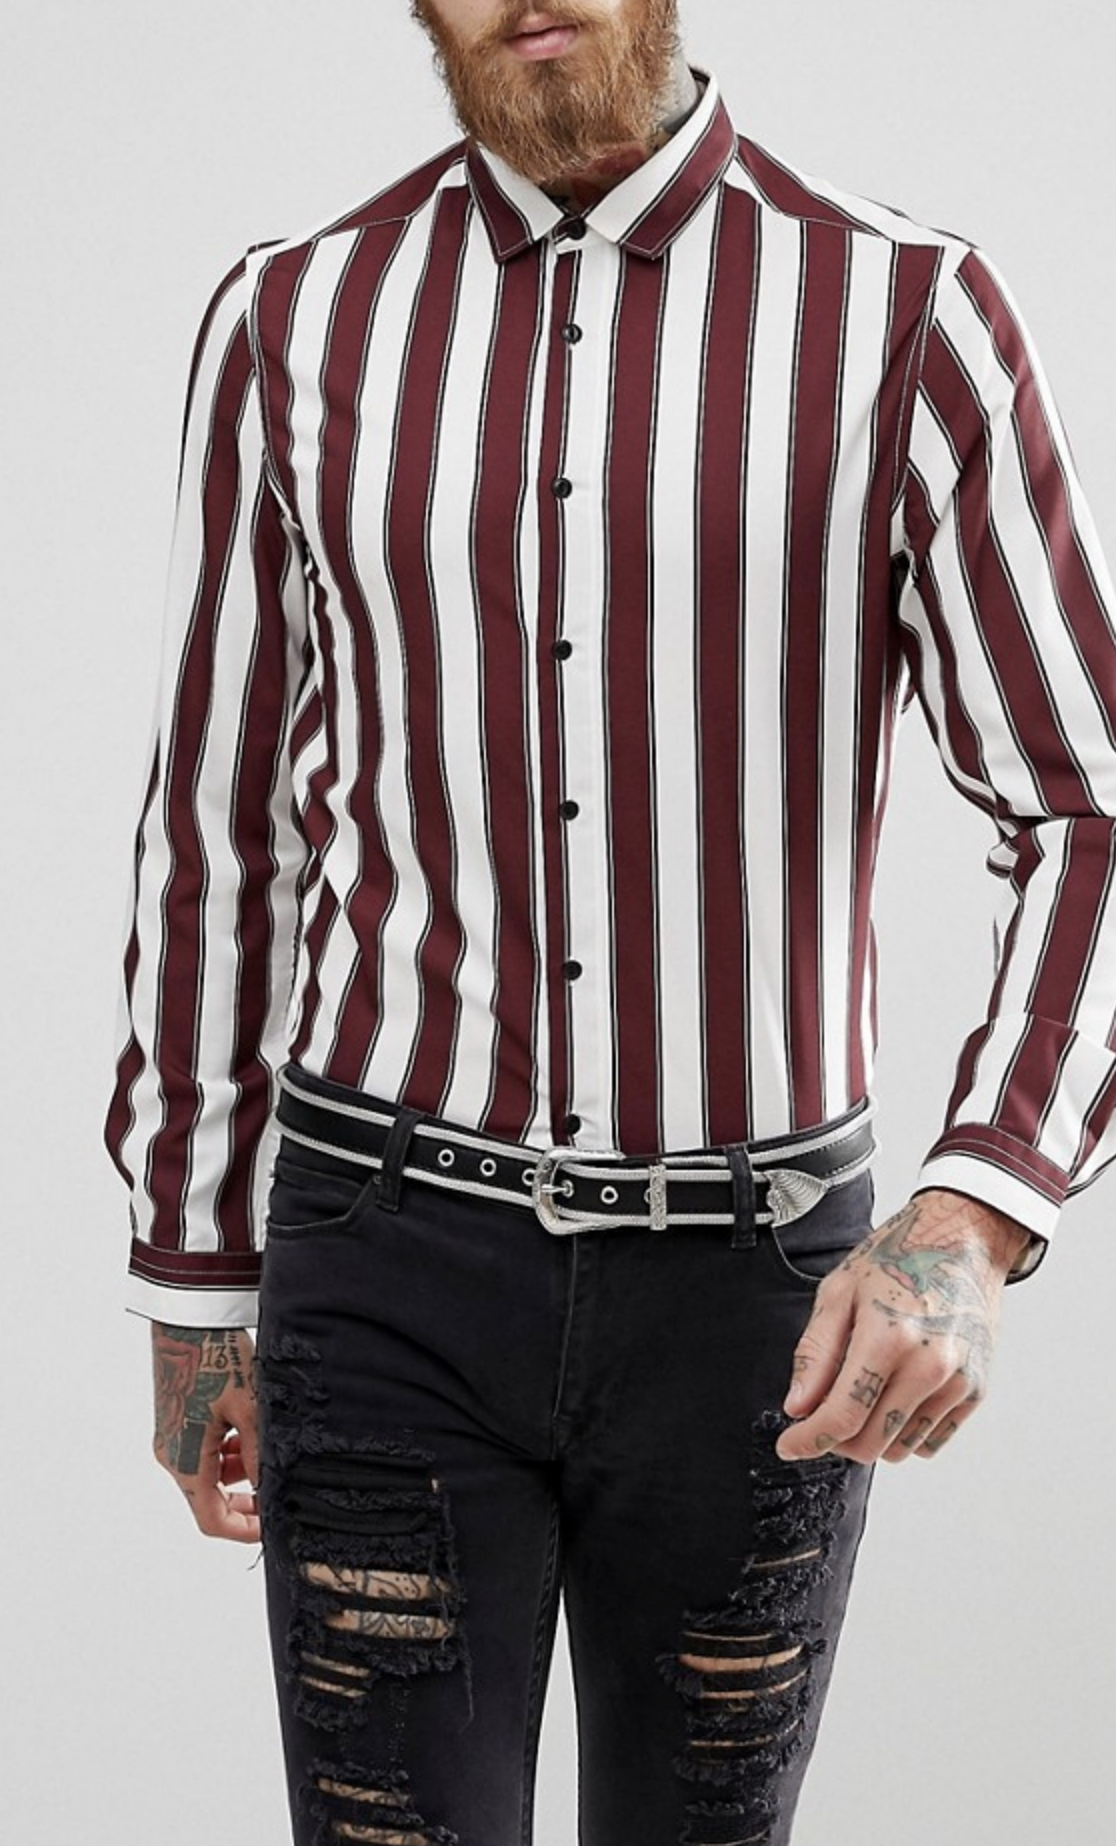 5866dfa2eb3 On my wish list   ASOS Regular Fit Stripe Shirt from ASOS  ad  men  fashion   shopping  outfit  inspiration  style  streetstyle  fall  winter  spring   summer ...